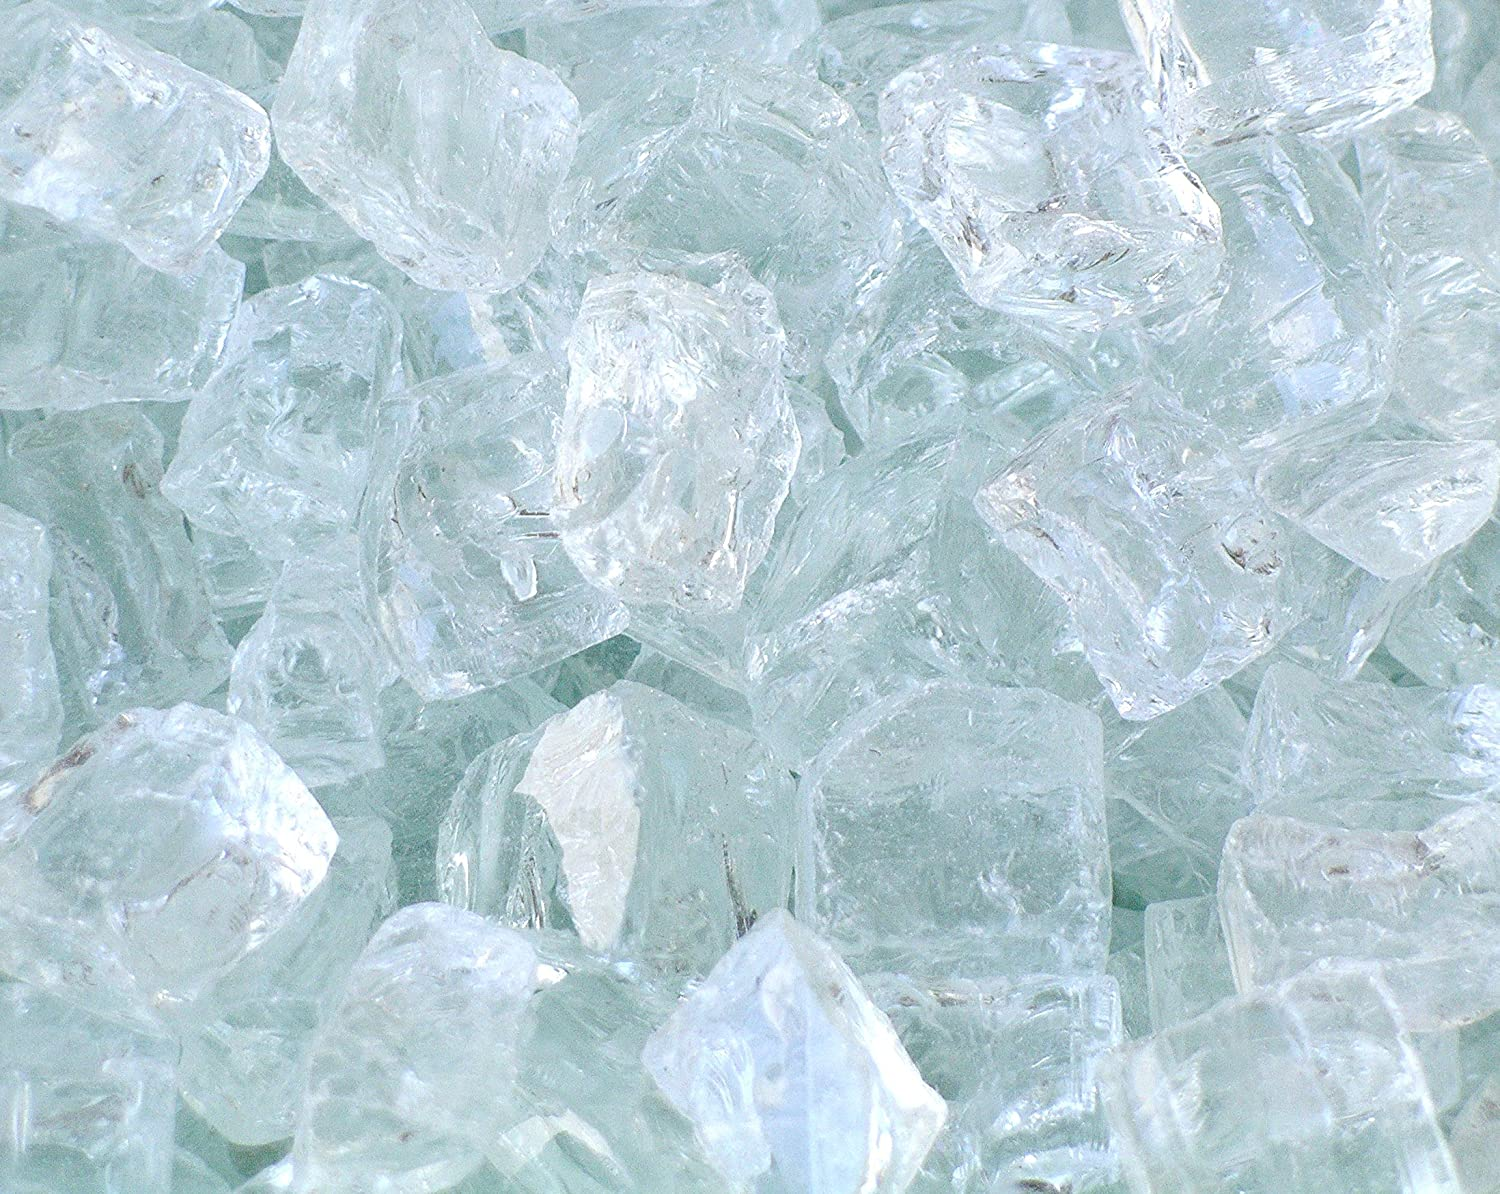 Fire Pit Glass, Chunky ~1/2 Clear with slight aqua tint, 1 LB Fireplace Glass San Diego CLE-H-1